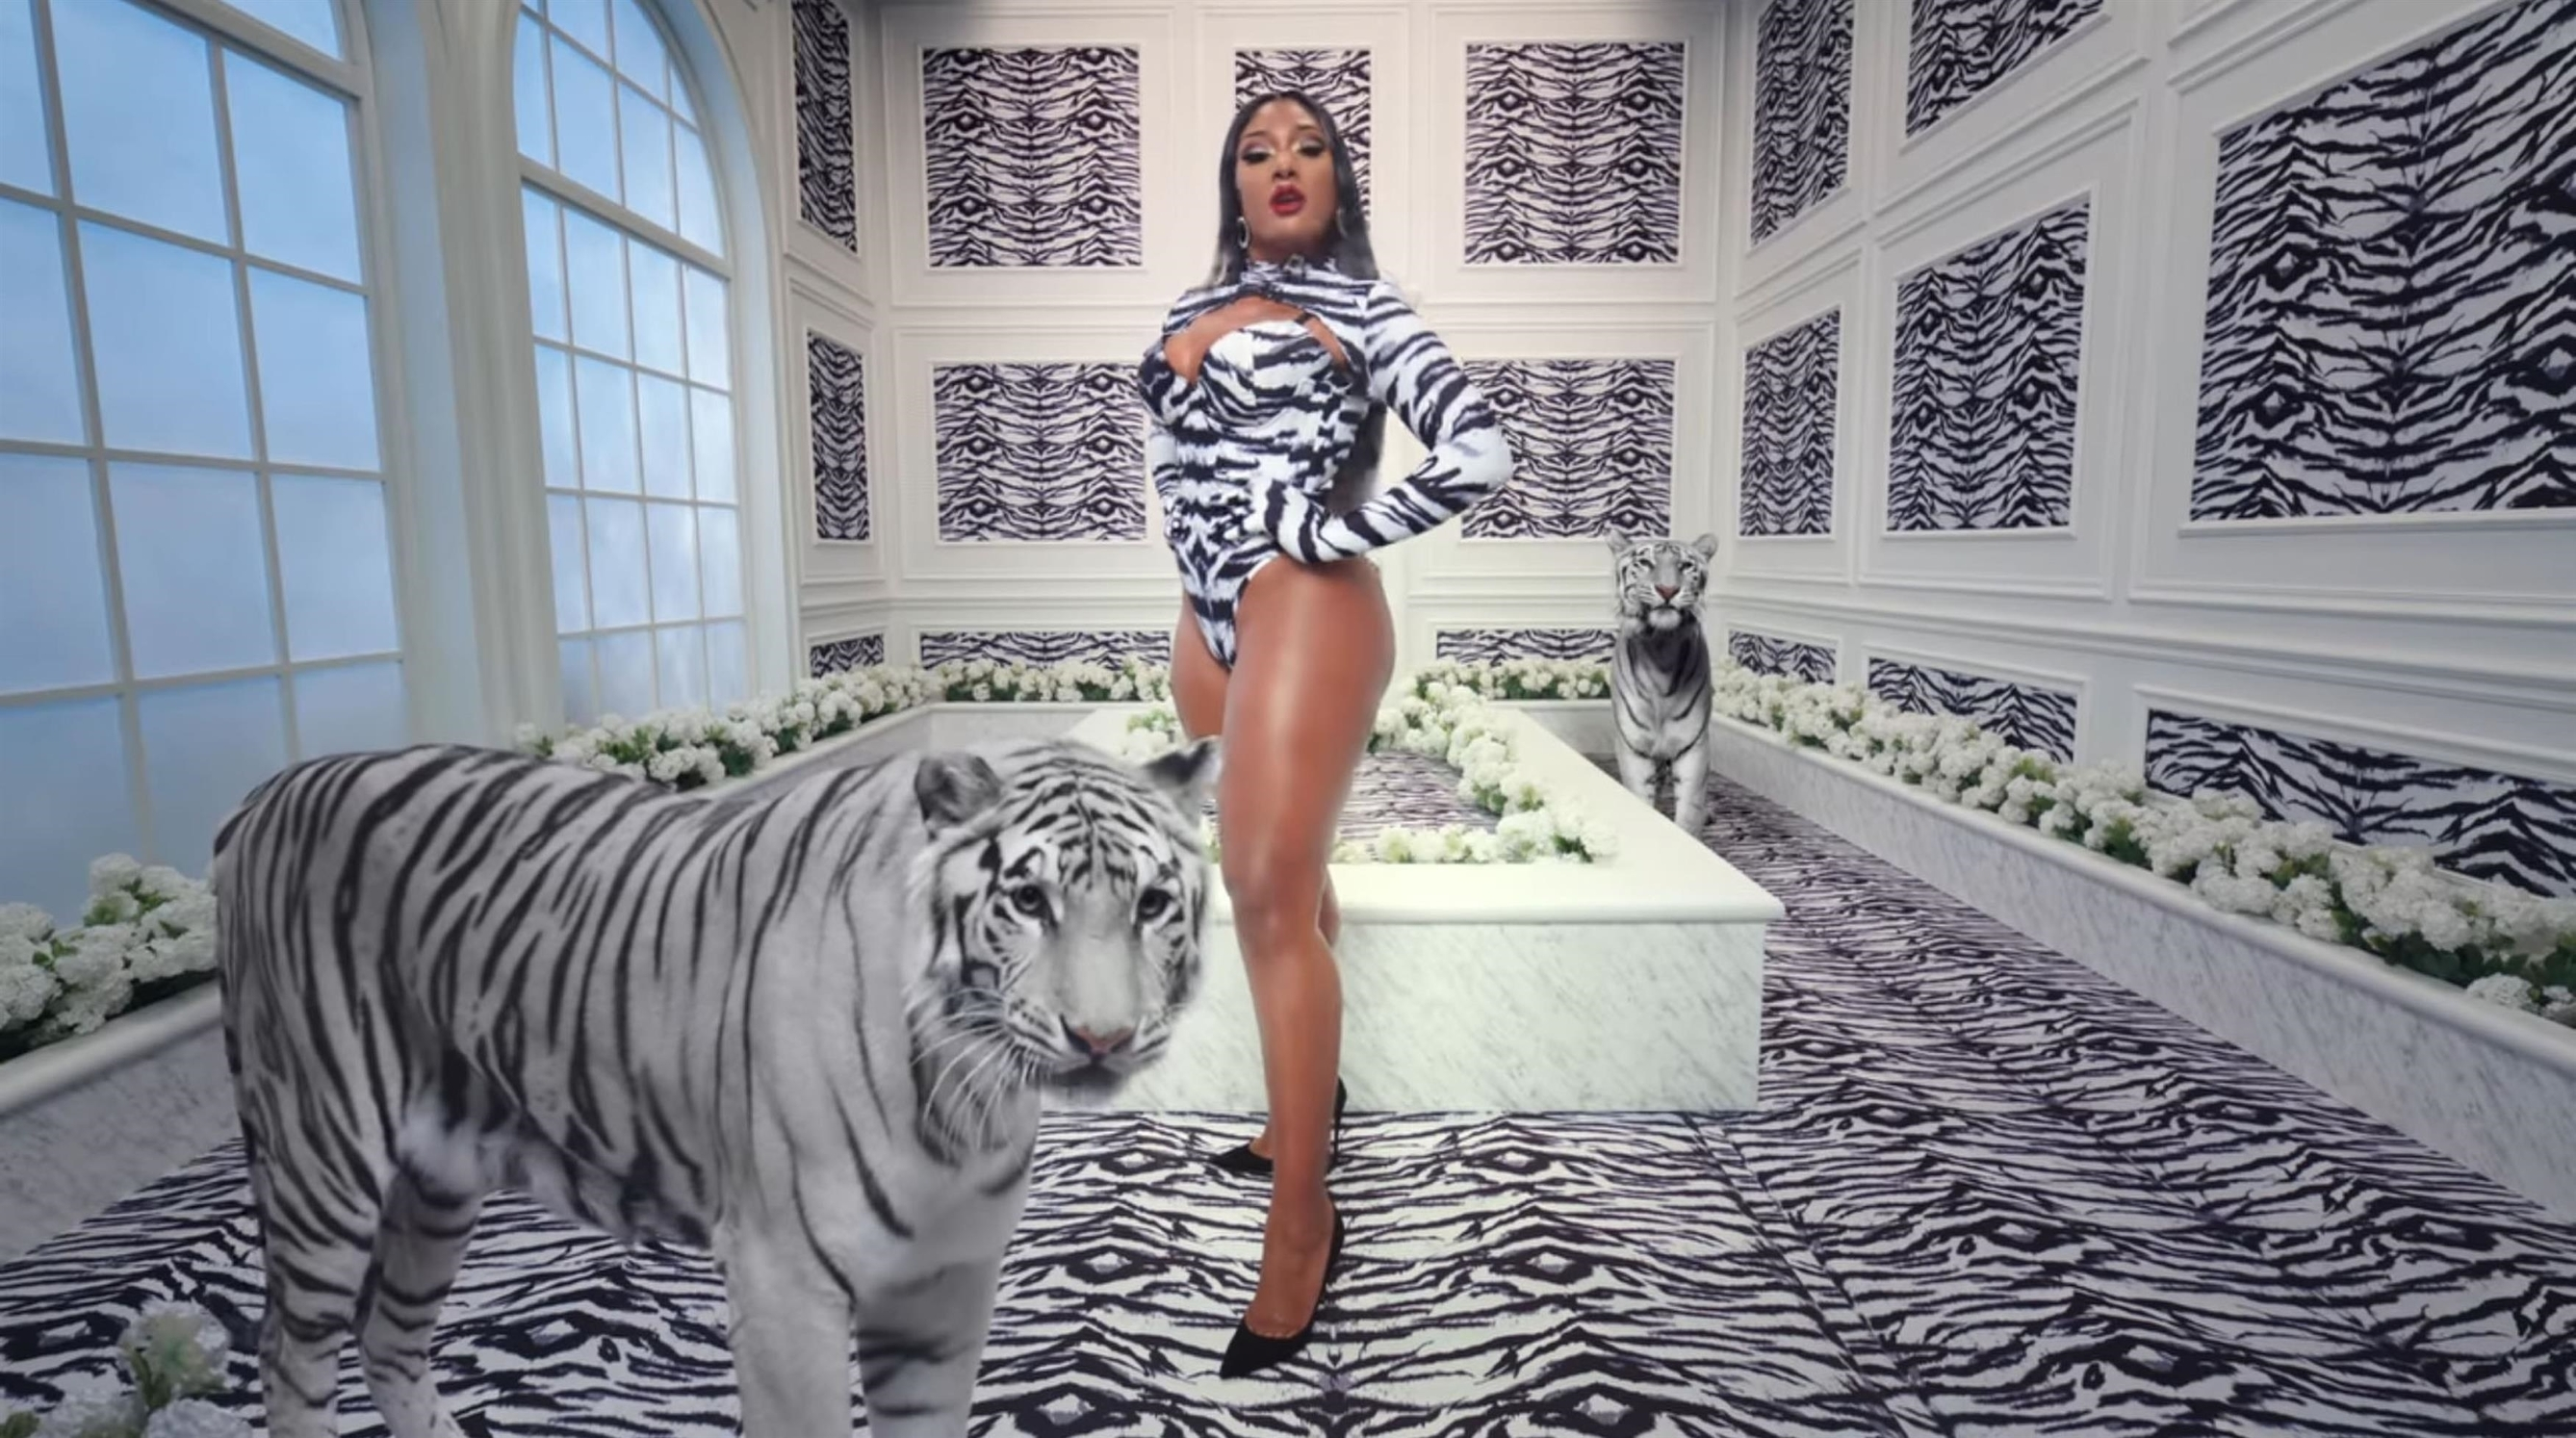 Los Angeles, CA  - Cardi B and Megan Thee Stallion release super raunchy music video for their new single WAP.  The song marks the first joint record between the rap superstars and the track also serves as Cardi's first original release since 2019's Press and arrives as she works on the follow-up to Invasion of Privacy. Cardi, 27, and Megan, 25, sent fans into a meltdown with the release of the music video in which they stunned in a number of barely-there outfits. The video saw the duo splashing around together in a pool as well as writhing around in a sand pit along with several snakes. Cardi also showcased her ample assets in a leopard print outfit that included studded nipple covers while Megan twerked in a barely-there zebra print leotard.  *BACKGRID DOES NOT CLAIM ANY COPYRIGHT OR LICENSE IN THE ATTACHED MATERIAL. ANY DOWNLOADING FEES CHARGED BY BACKGRID ARE FOR BACKGRID'S SERVICES ONLY, AND DO NOT, NOR ARE THEY INTENDED TO, CONVEY TO THE USER ANY COPYRIGHT OR LICENSE IN THE MATERIAL. BY PUBLISHING THIS MATERIAL , THE USER EXPRESSLY AGREES TO INDEMNIFY AND TO HOLD BACKGRID HARMLESS FROM ANY CLAIMS, DEMANDS, OR CAUSES OF ACTION ARISING OUT OF OR CONNECTED IN ANY WAY WITH USER'S PUBLICATION OF THE MATERIAL*  BACKGRID UK 8 AUGUST 2020,Image: 551127636, License: Rights-managed, Restrictions: RIGHTS: WORLDWIDE EXCEPT IN UNITED STATES, Model Release: no, Credit line: Atlantic Records / BACKGRID / Backgrid UK / Profimedia